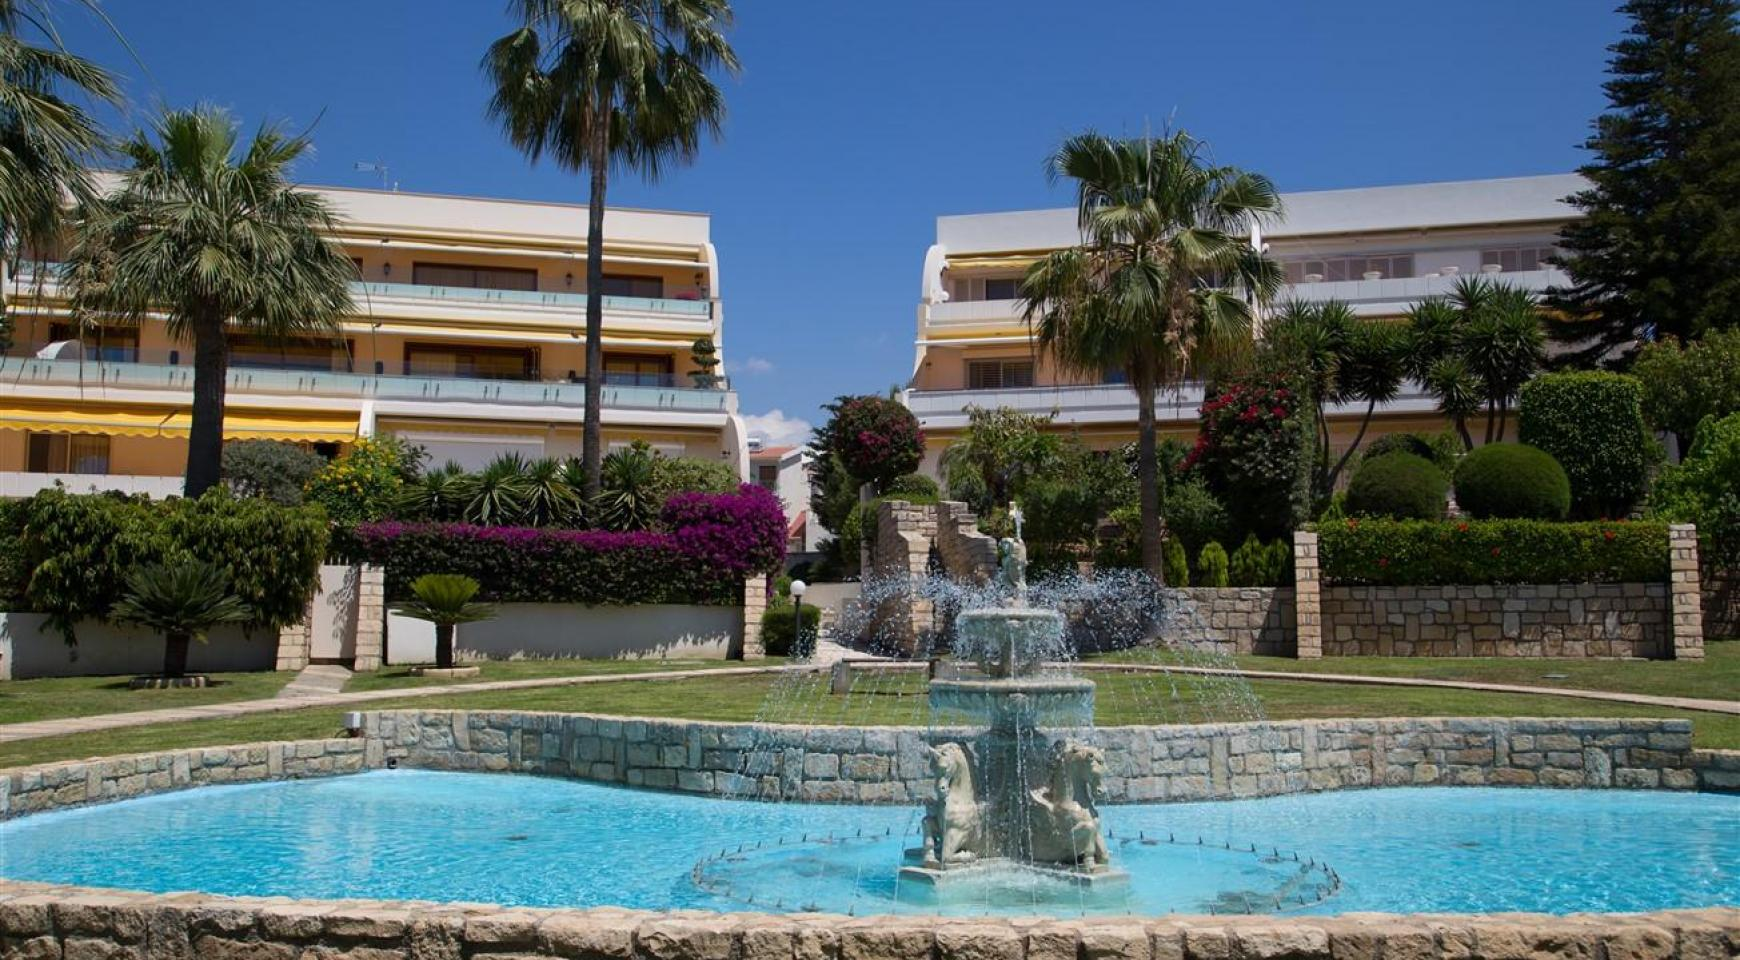 3 Bedroom Apartment in Thera Complex by the Sea - 6